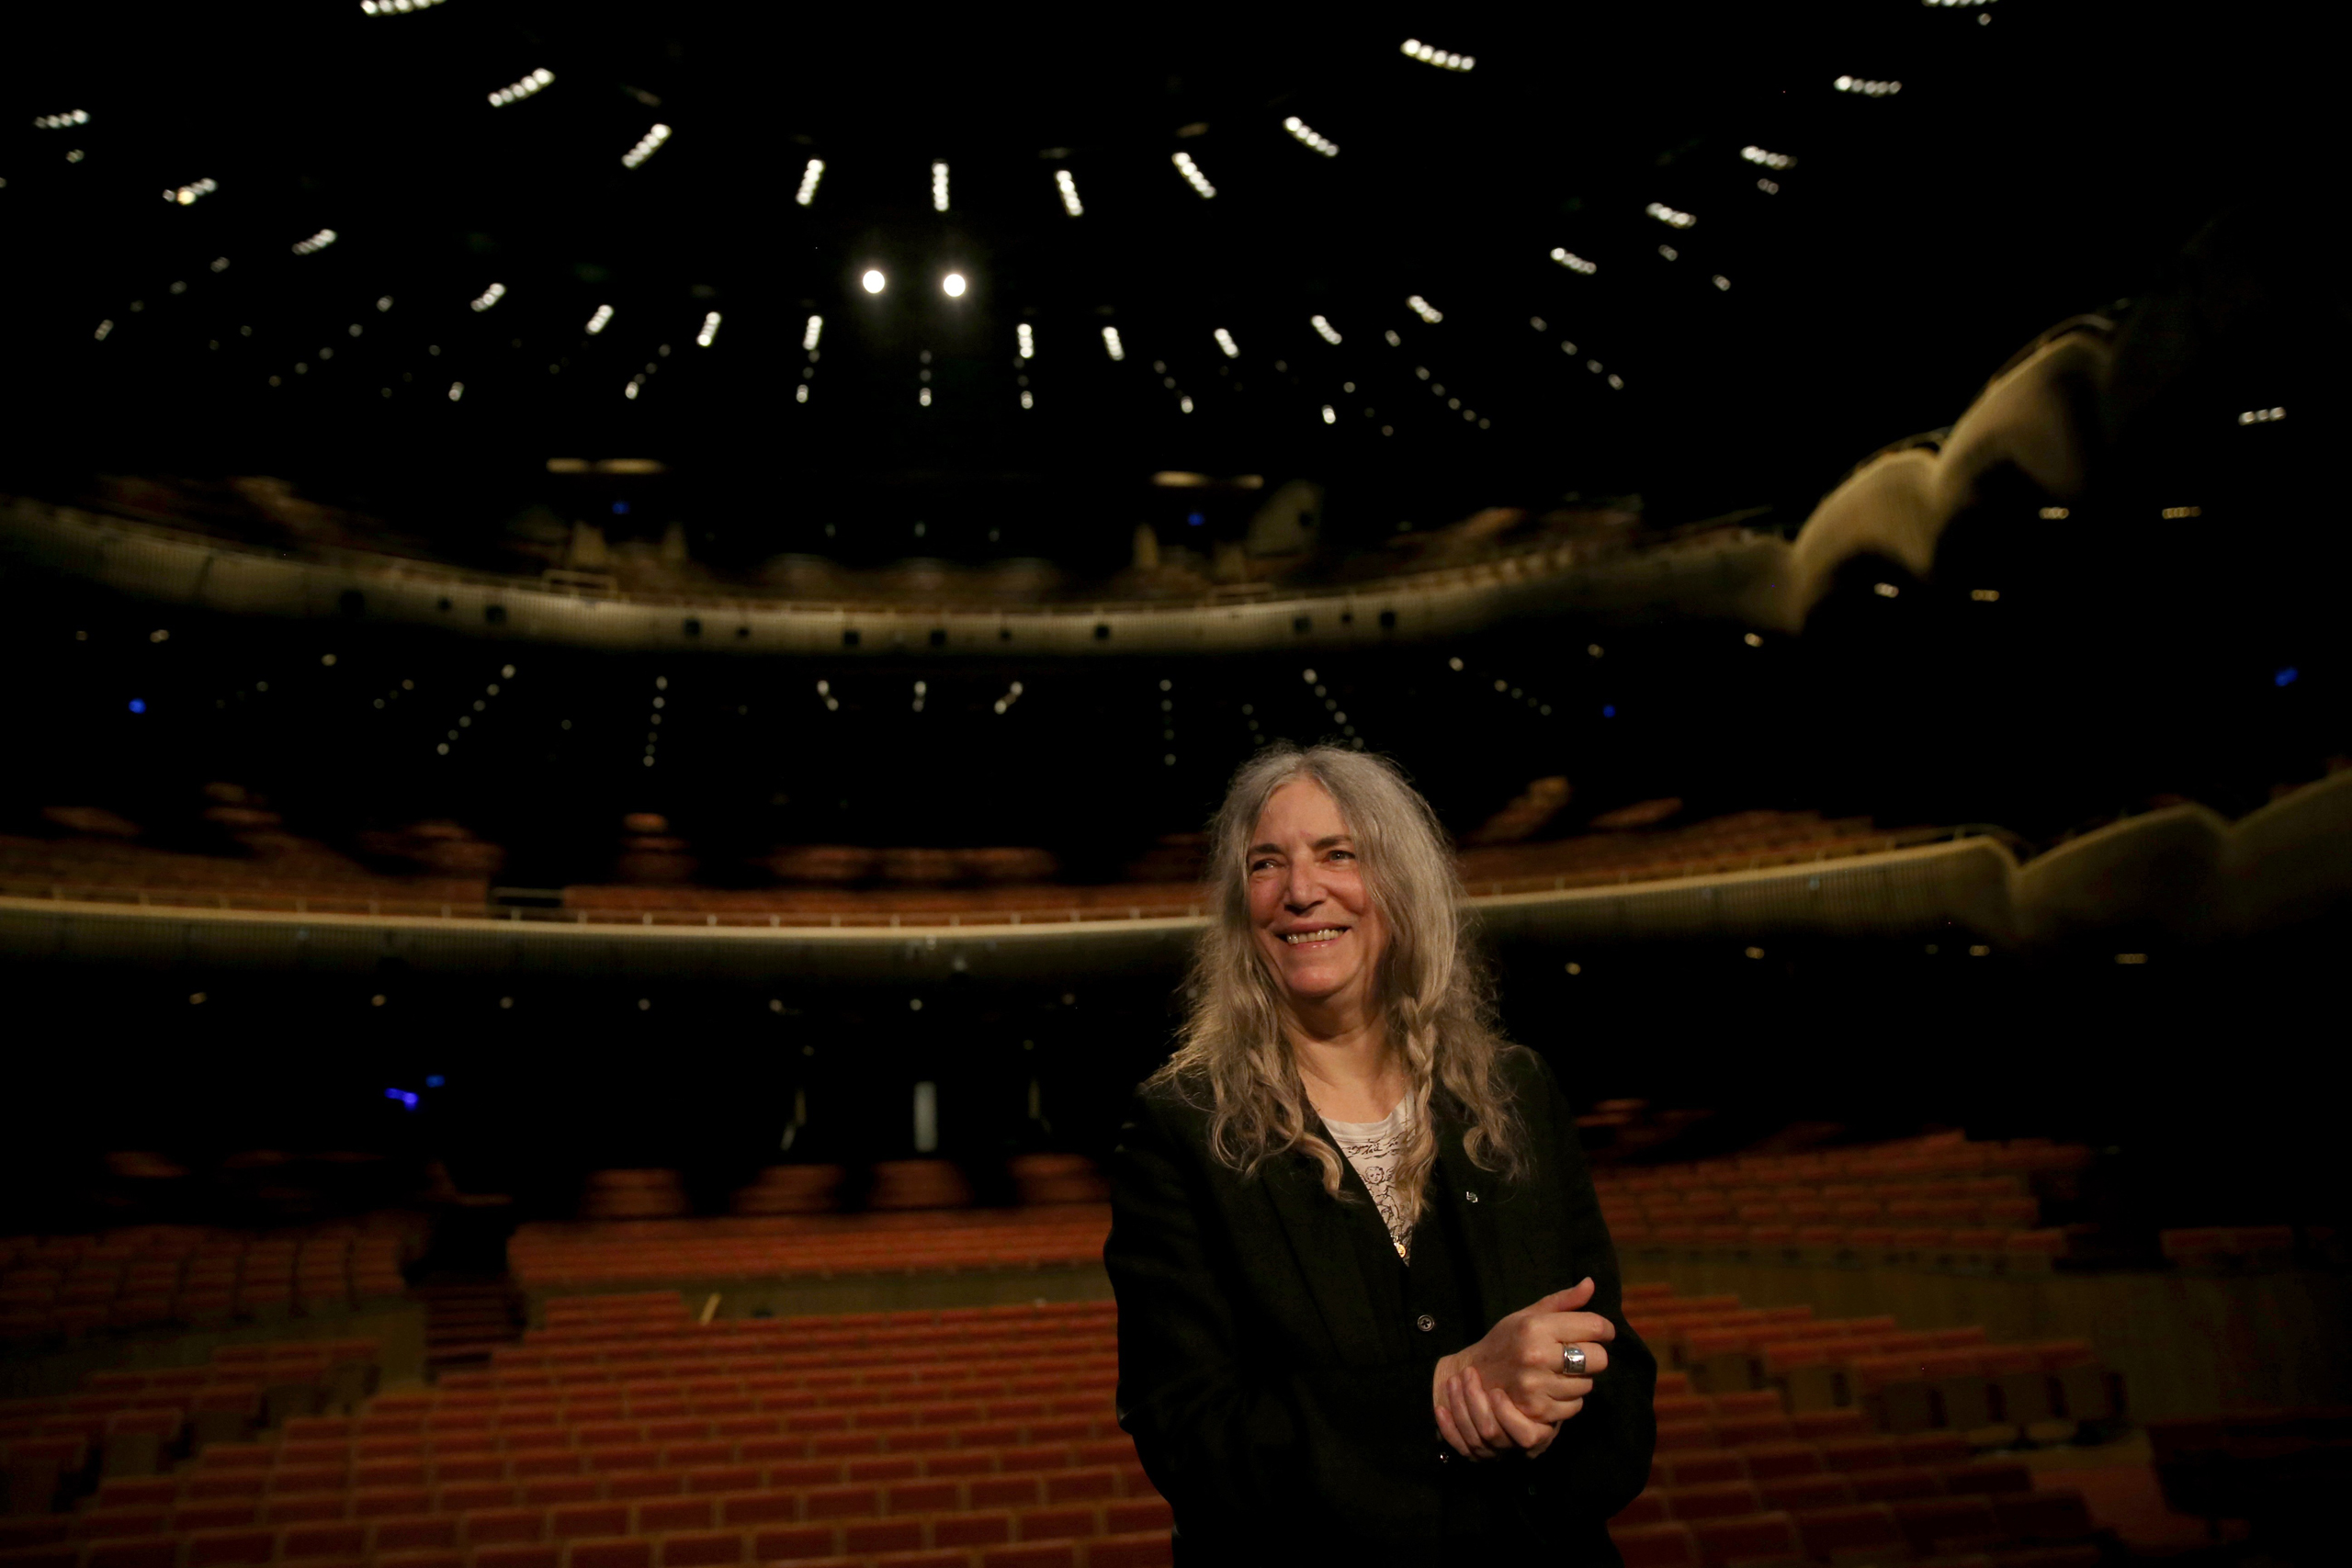 Patti Smith will be singing in Bob Dylan's stead.